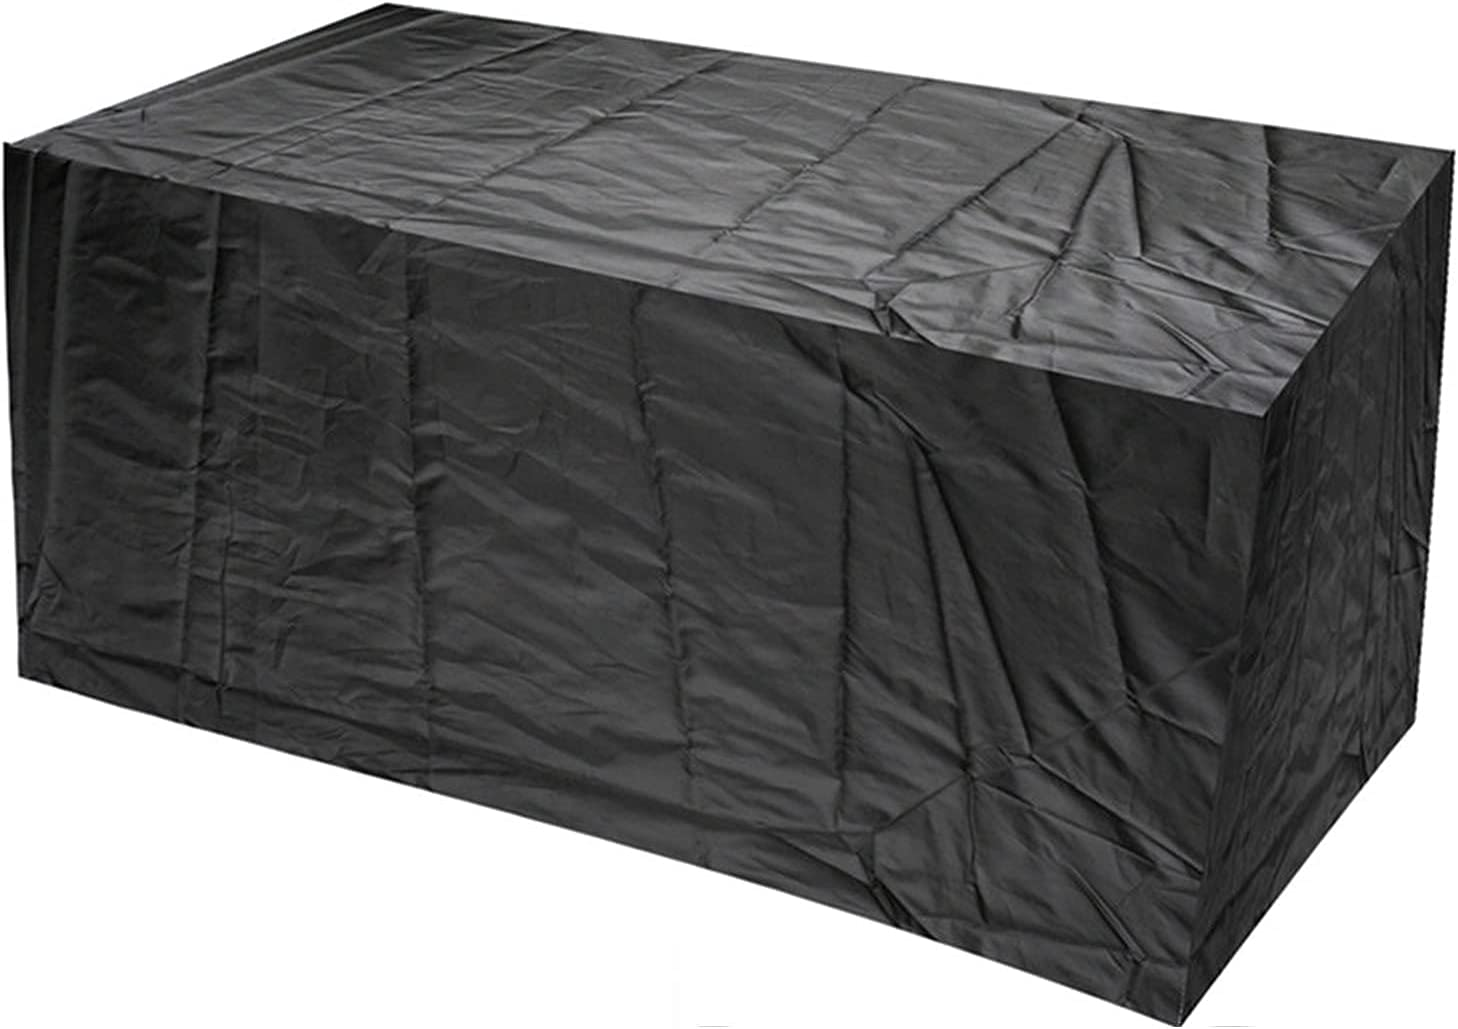 Furniture Cover Garden Table Proof Water NEW before selling ☆ Anti-U depot